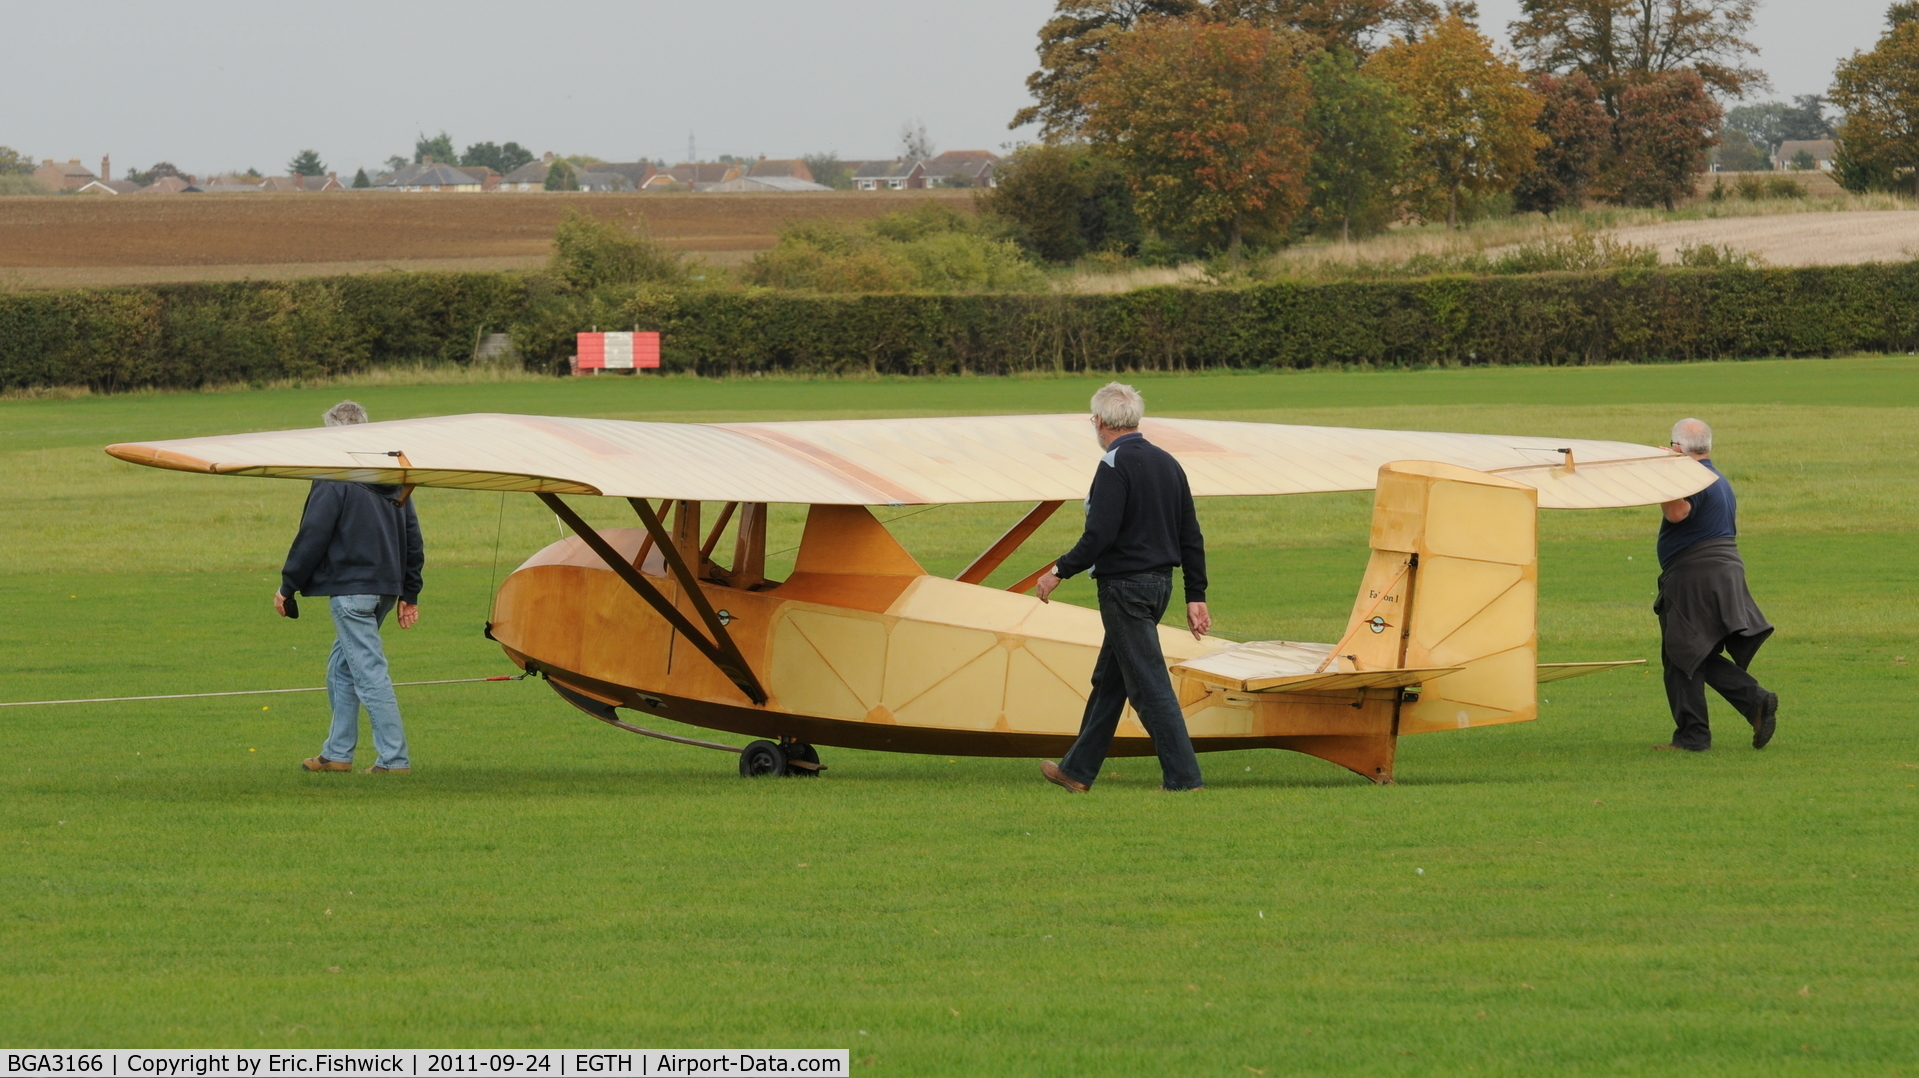 BGA3166, Slingsby T-1 Falcon Replica C/N Not found BGA3166, 1. BGA3166 at the glorious Shuttleworth Uncovered Air Display, September 2011